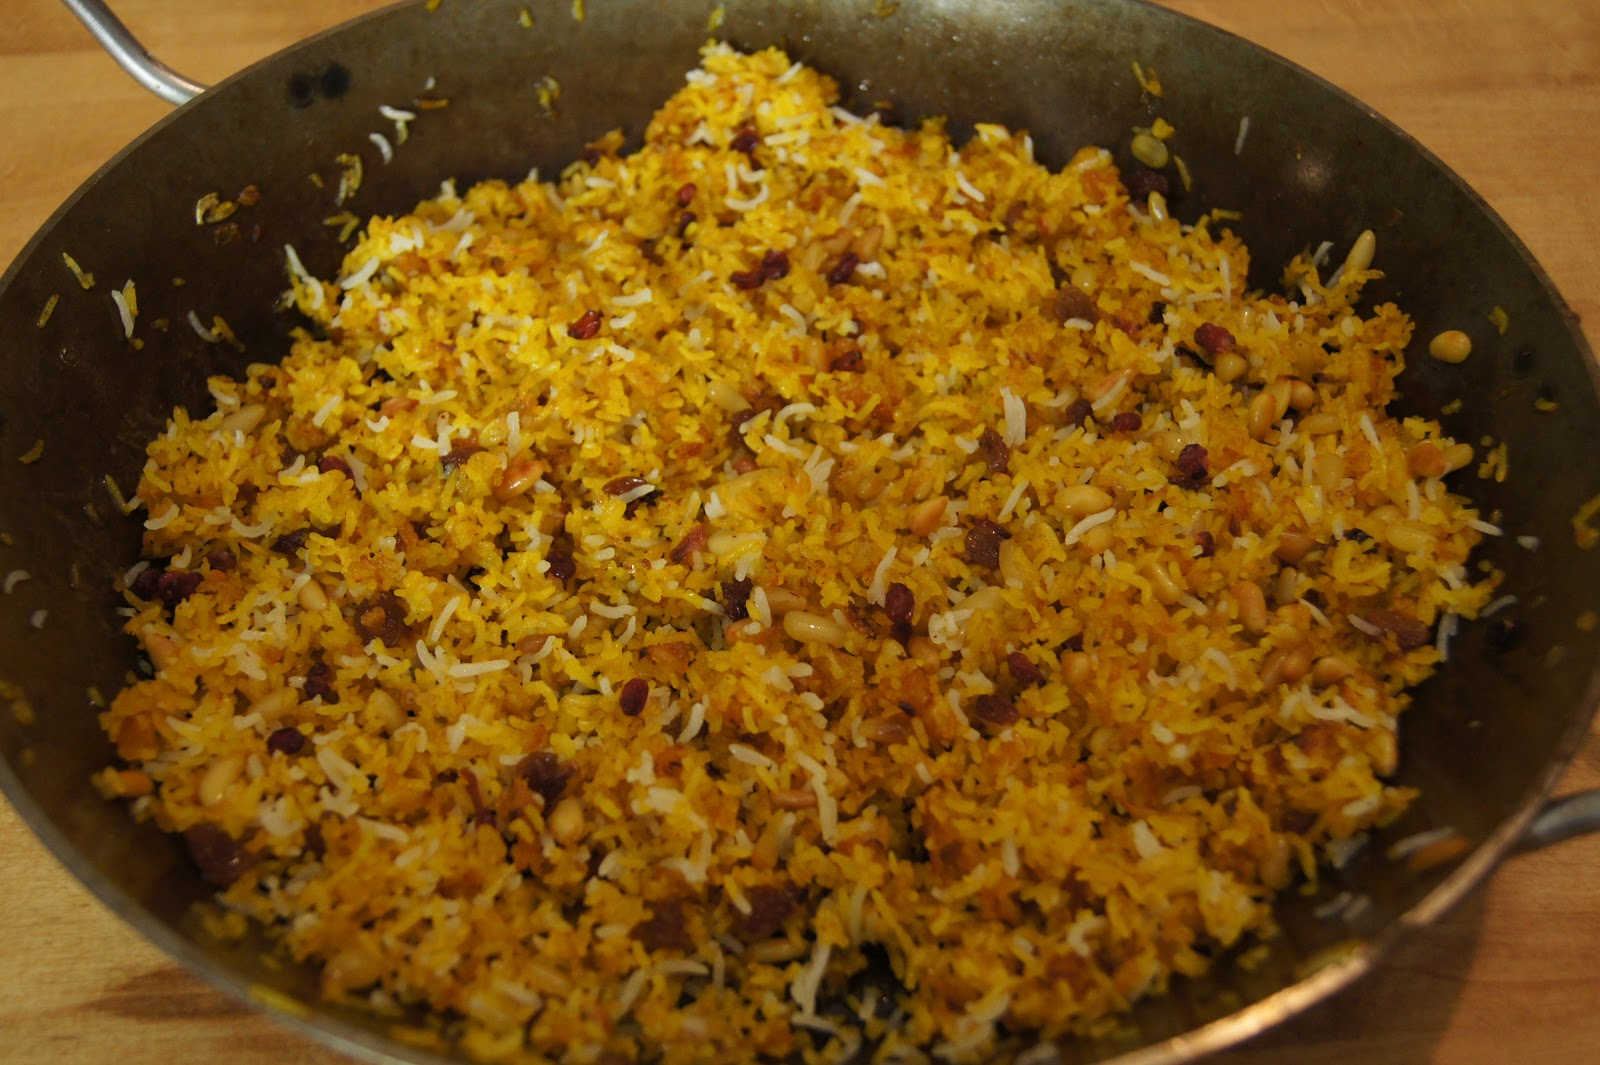 ... of the Iranian/Persian fried rice dish also known as Shirin Polow